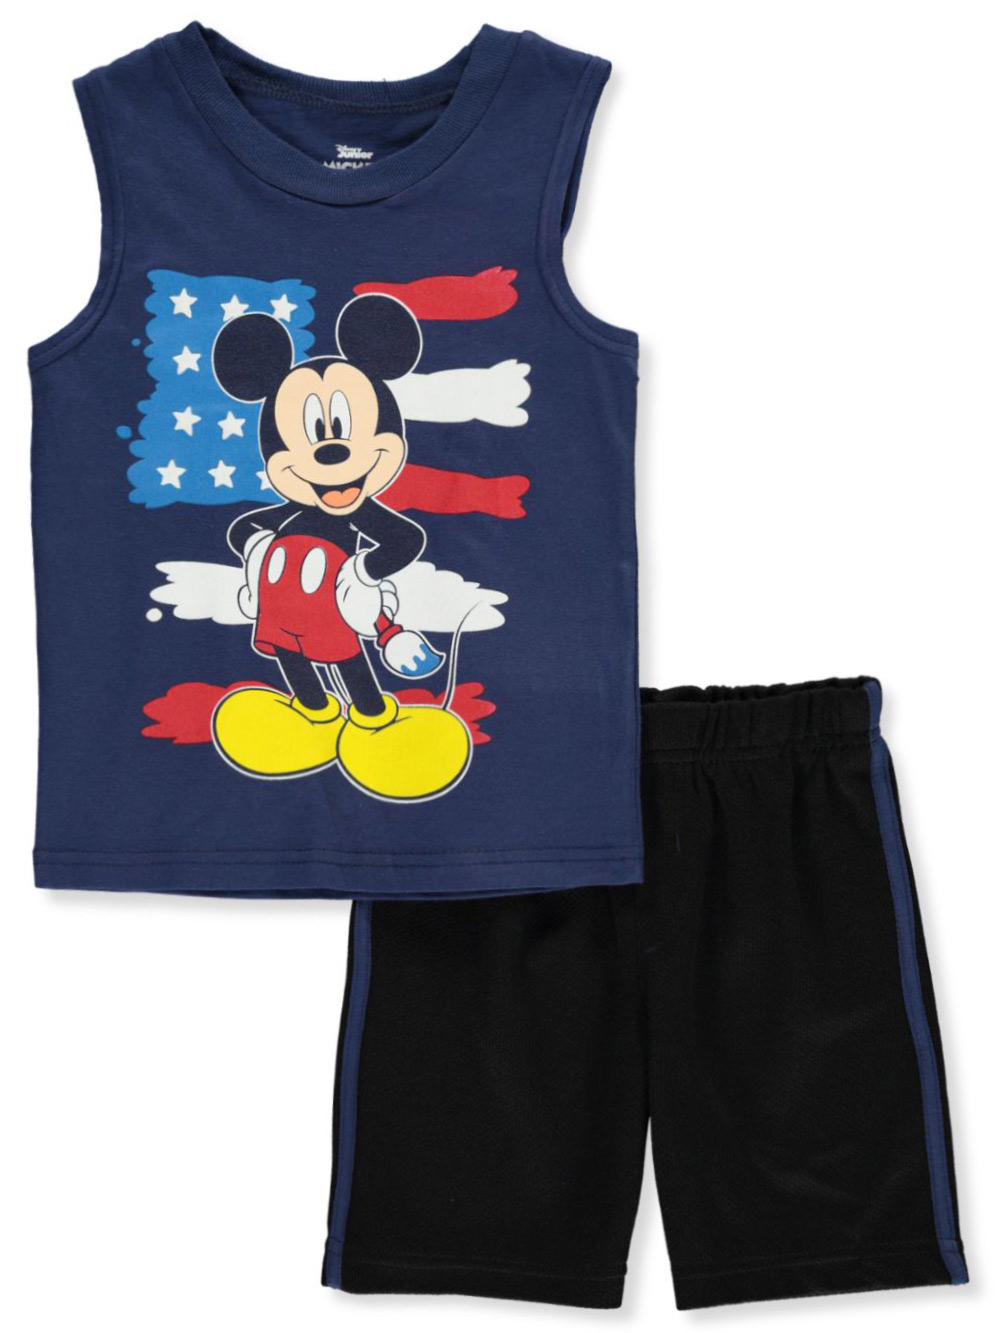 Disney Mickey Mouse Sleeveless Tee and Knit Short Set for Baby Boys 3-6 Months